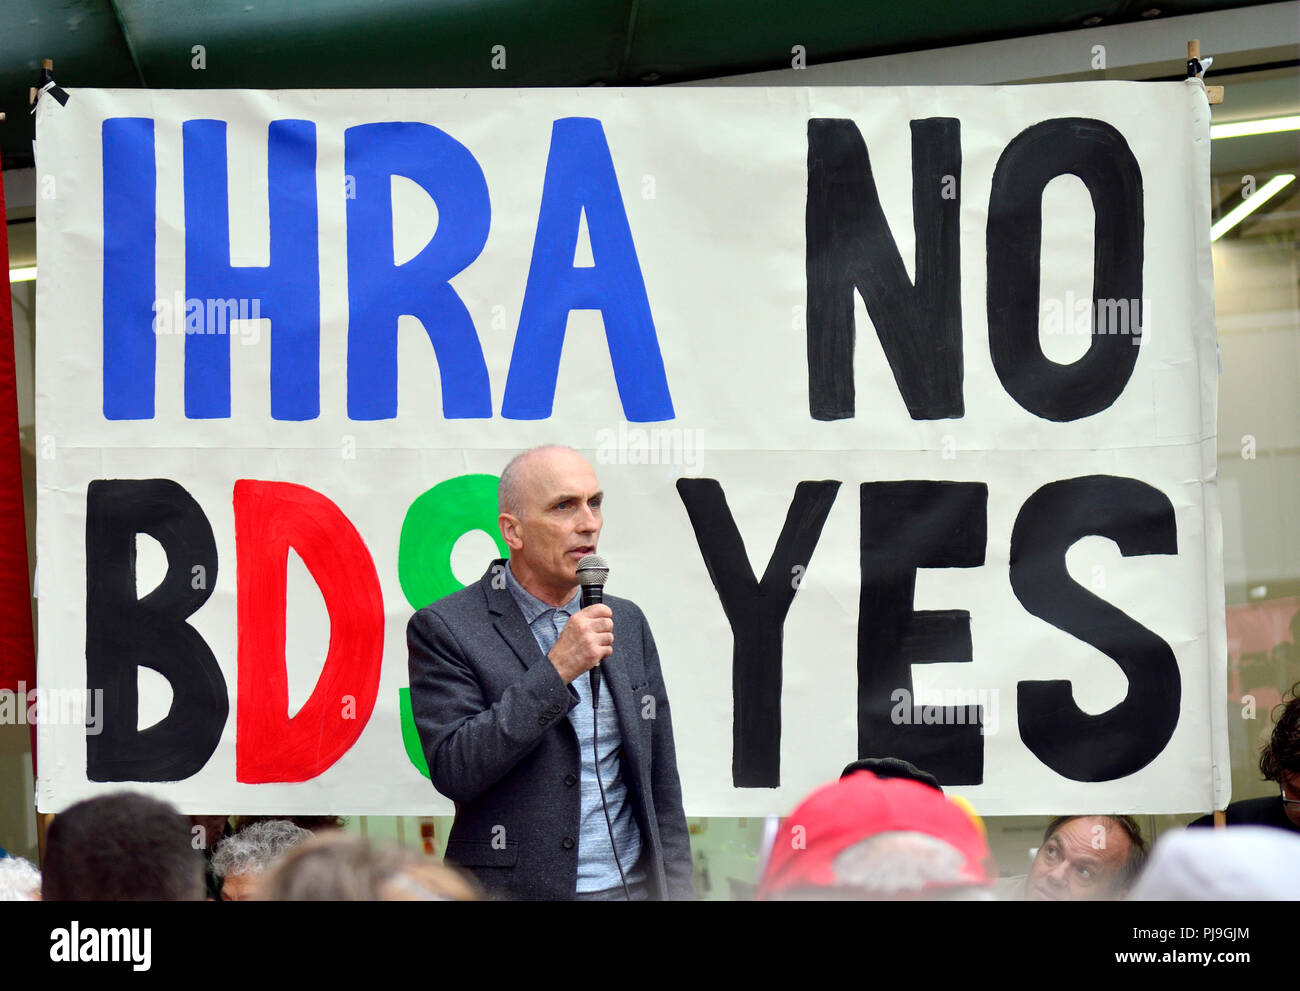 Chris Williamson MP (Labour: Derby North) outside Labour HQ in Victoria Street, London, as the party discuss anti-Semitism inside. 4th September 2018 - Stock Image